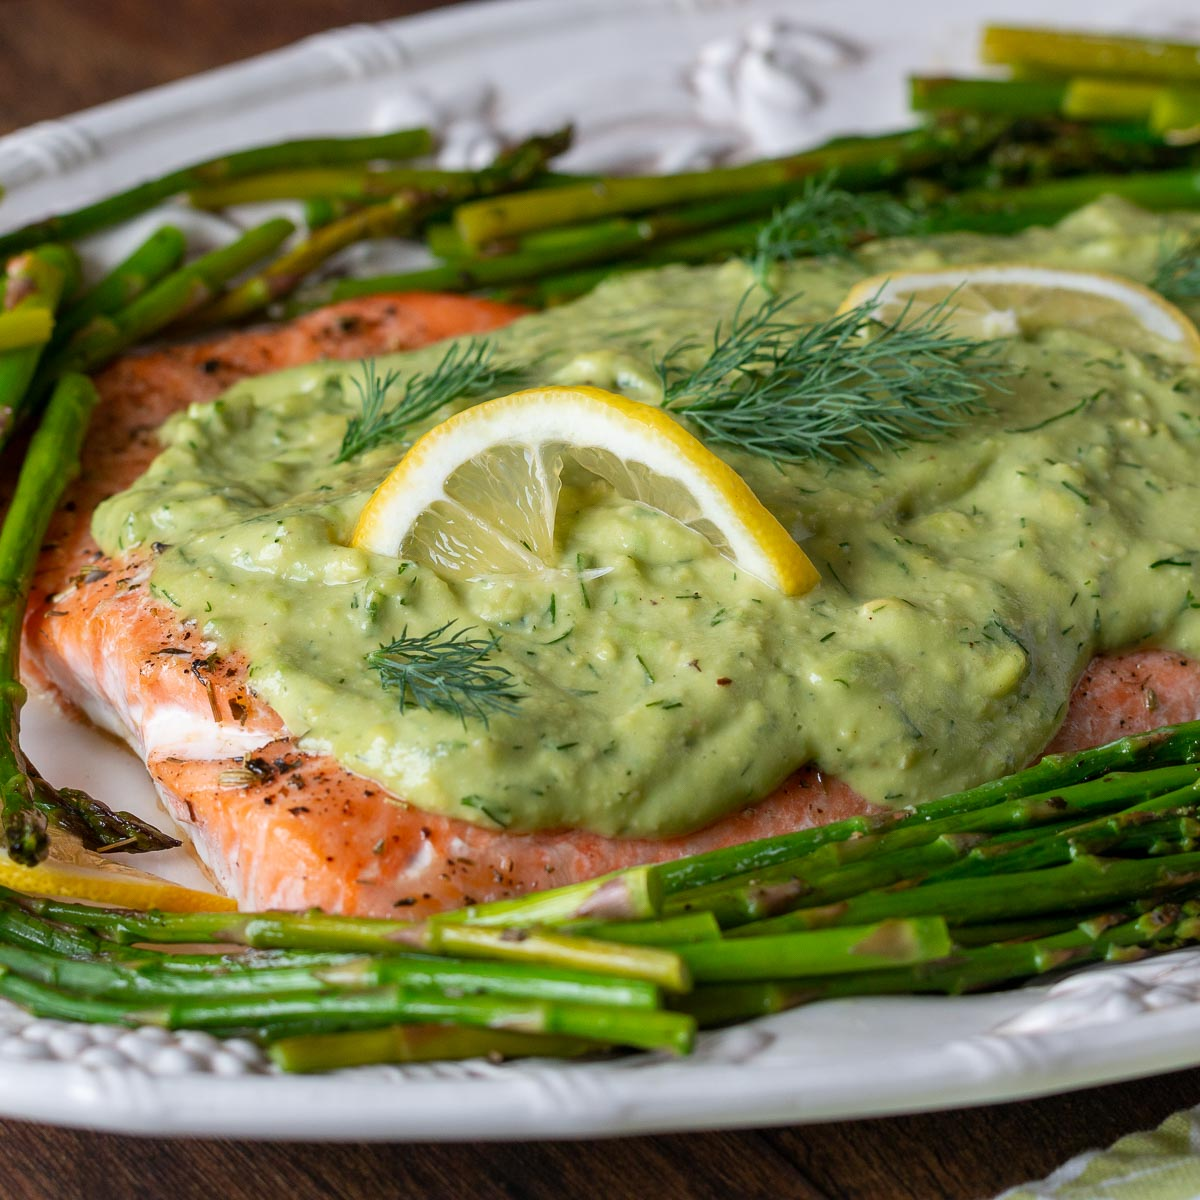 Baked salmon with avocado sauce on top with asparagus on a white serving platter.